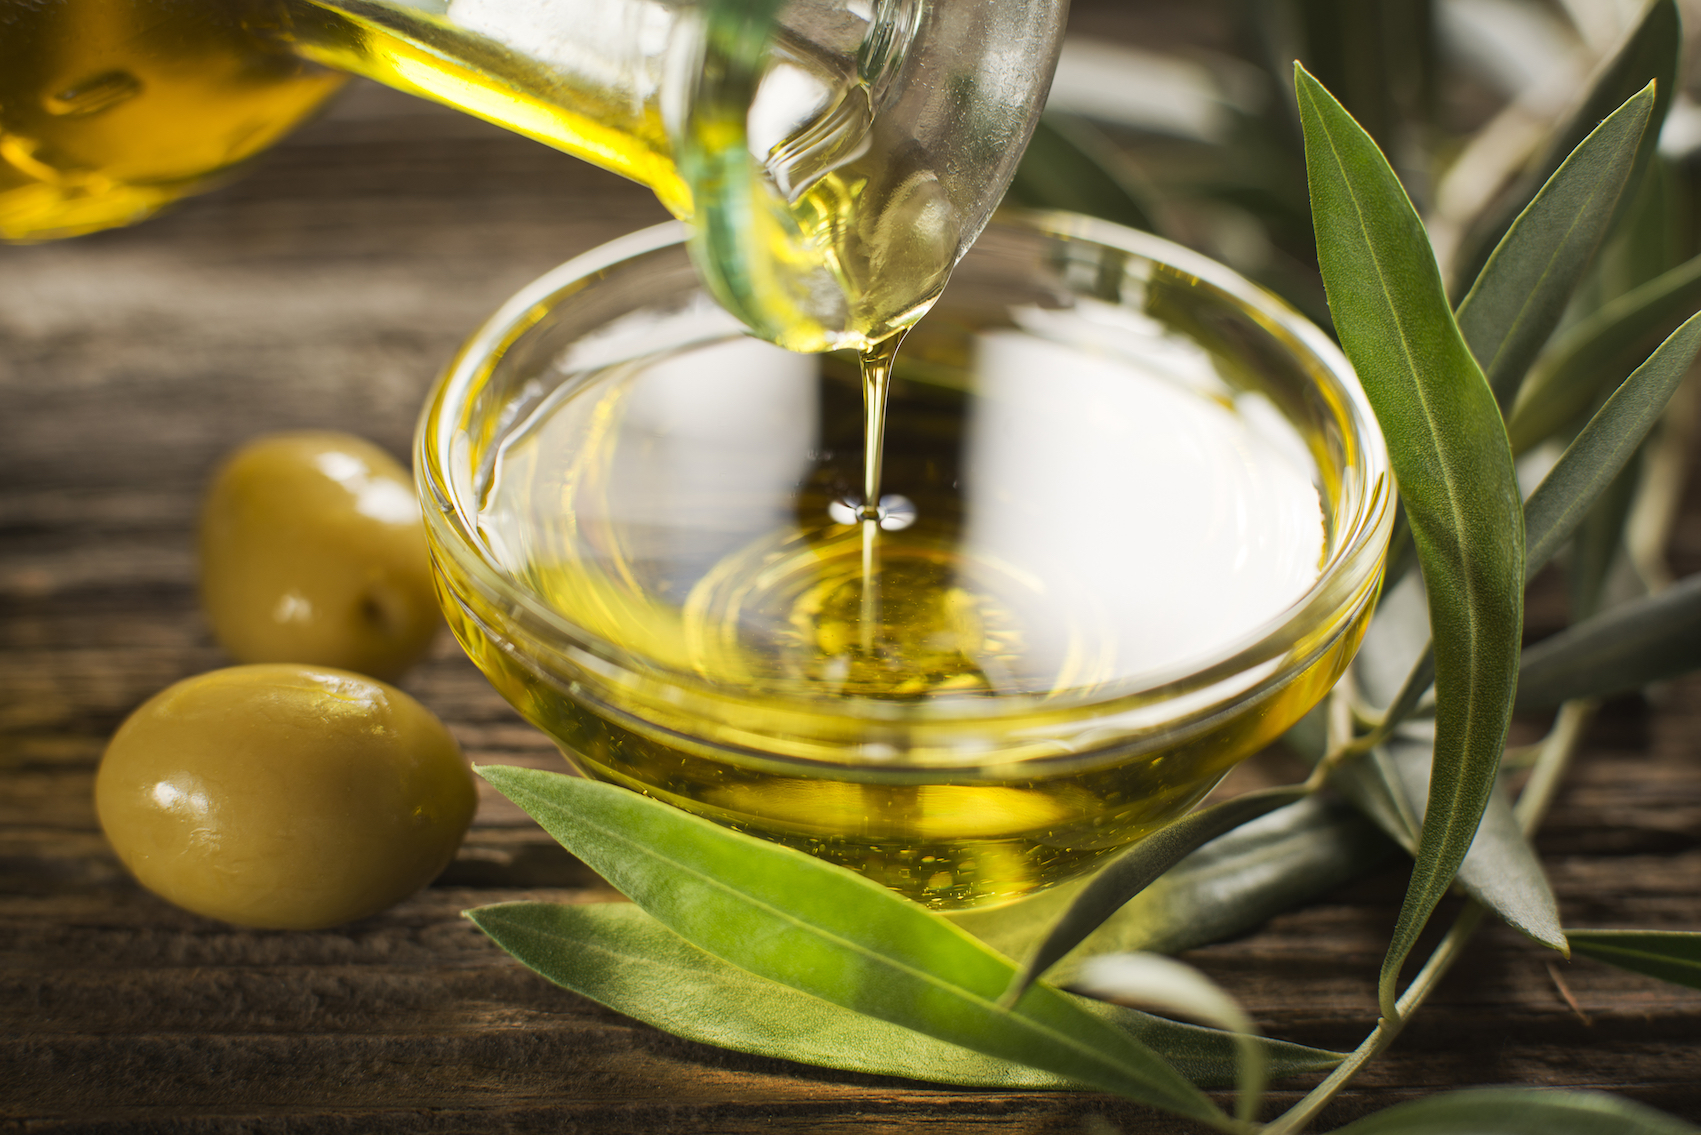 Some people have been concerned that olive oil may not be safe to use in frying food due to the release of aldehydes.